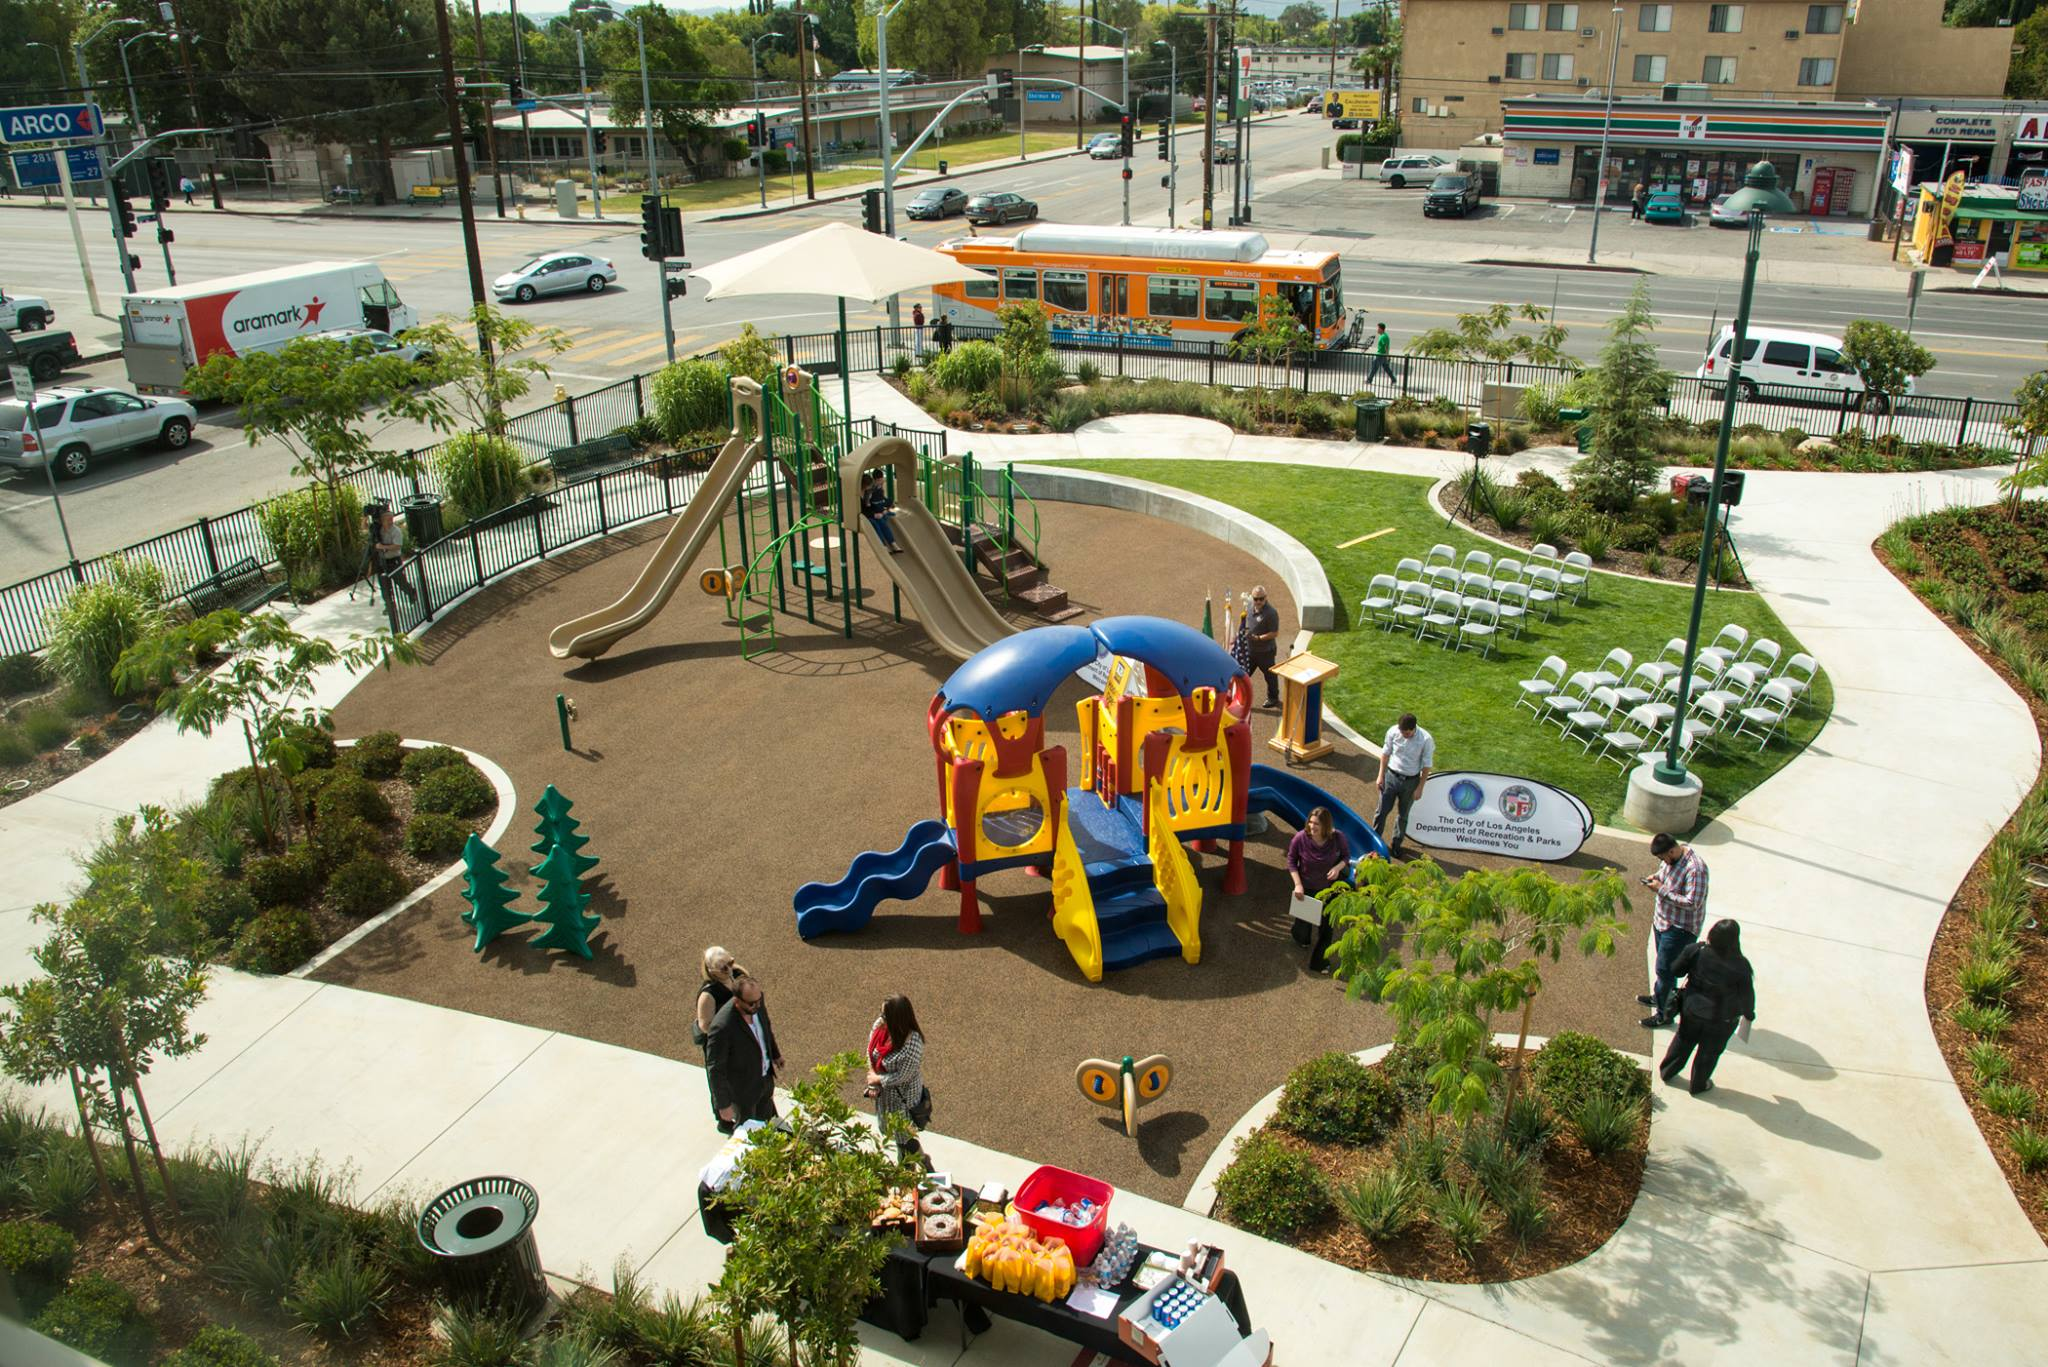 greenwood_square_park.jpg